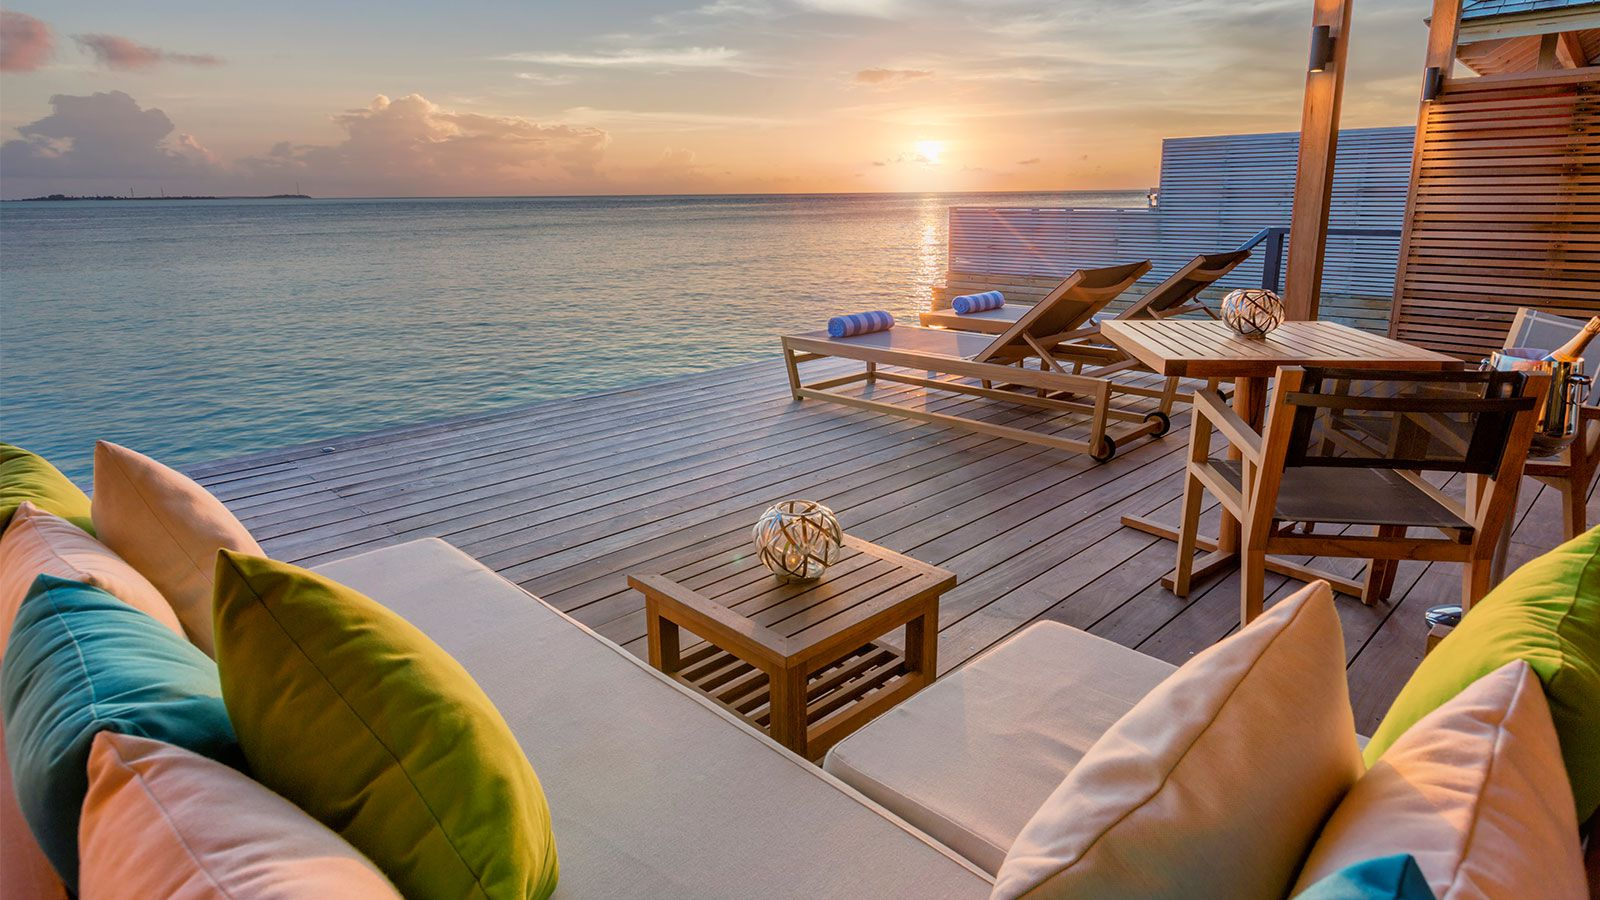 Maldives villas maldives accommodation hurawalhi for Villas wallpaper